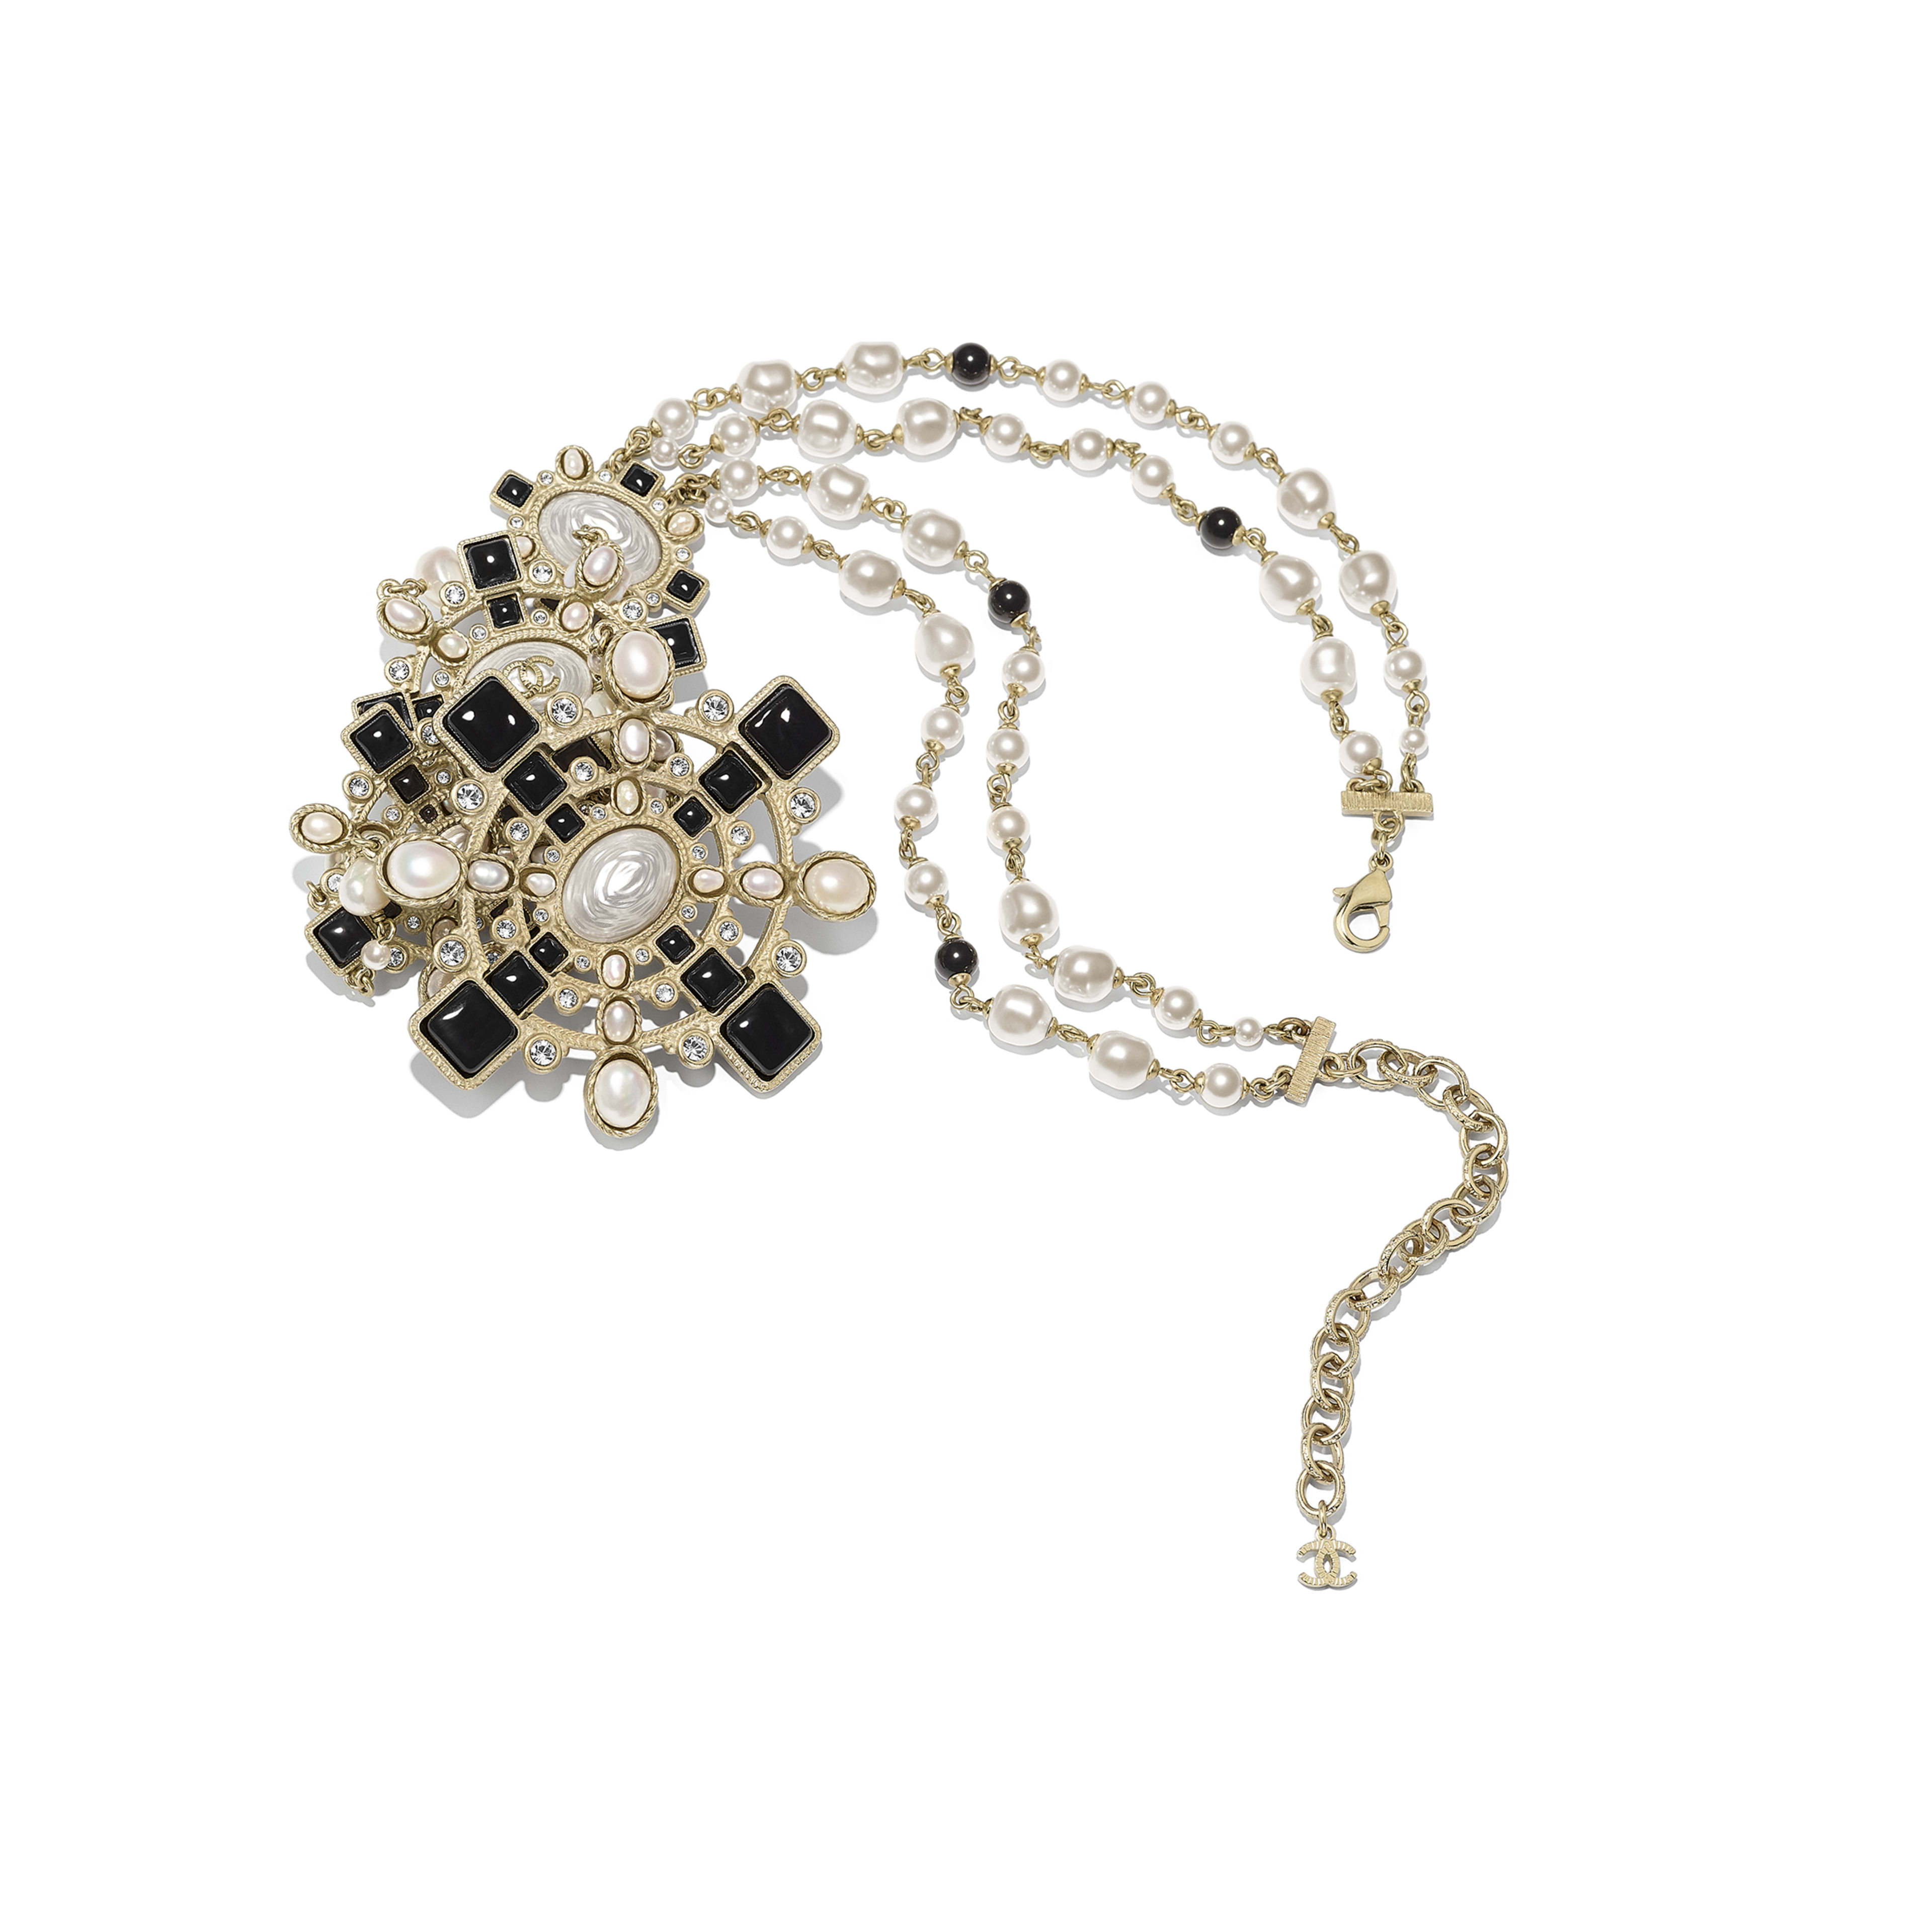 Necklace - Gold, Pearly White, Black & Crystal - Metal, Cultured Fresh Water Pearls, Glass Pearls, Diamanté & Resin - Alternative view - see full sized version